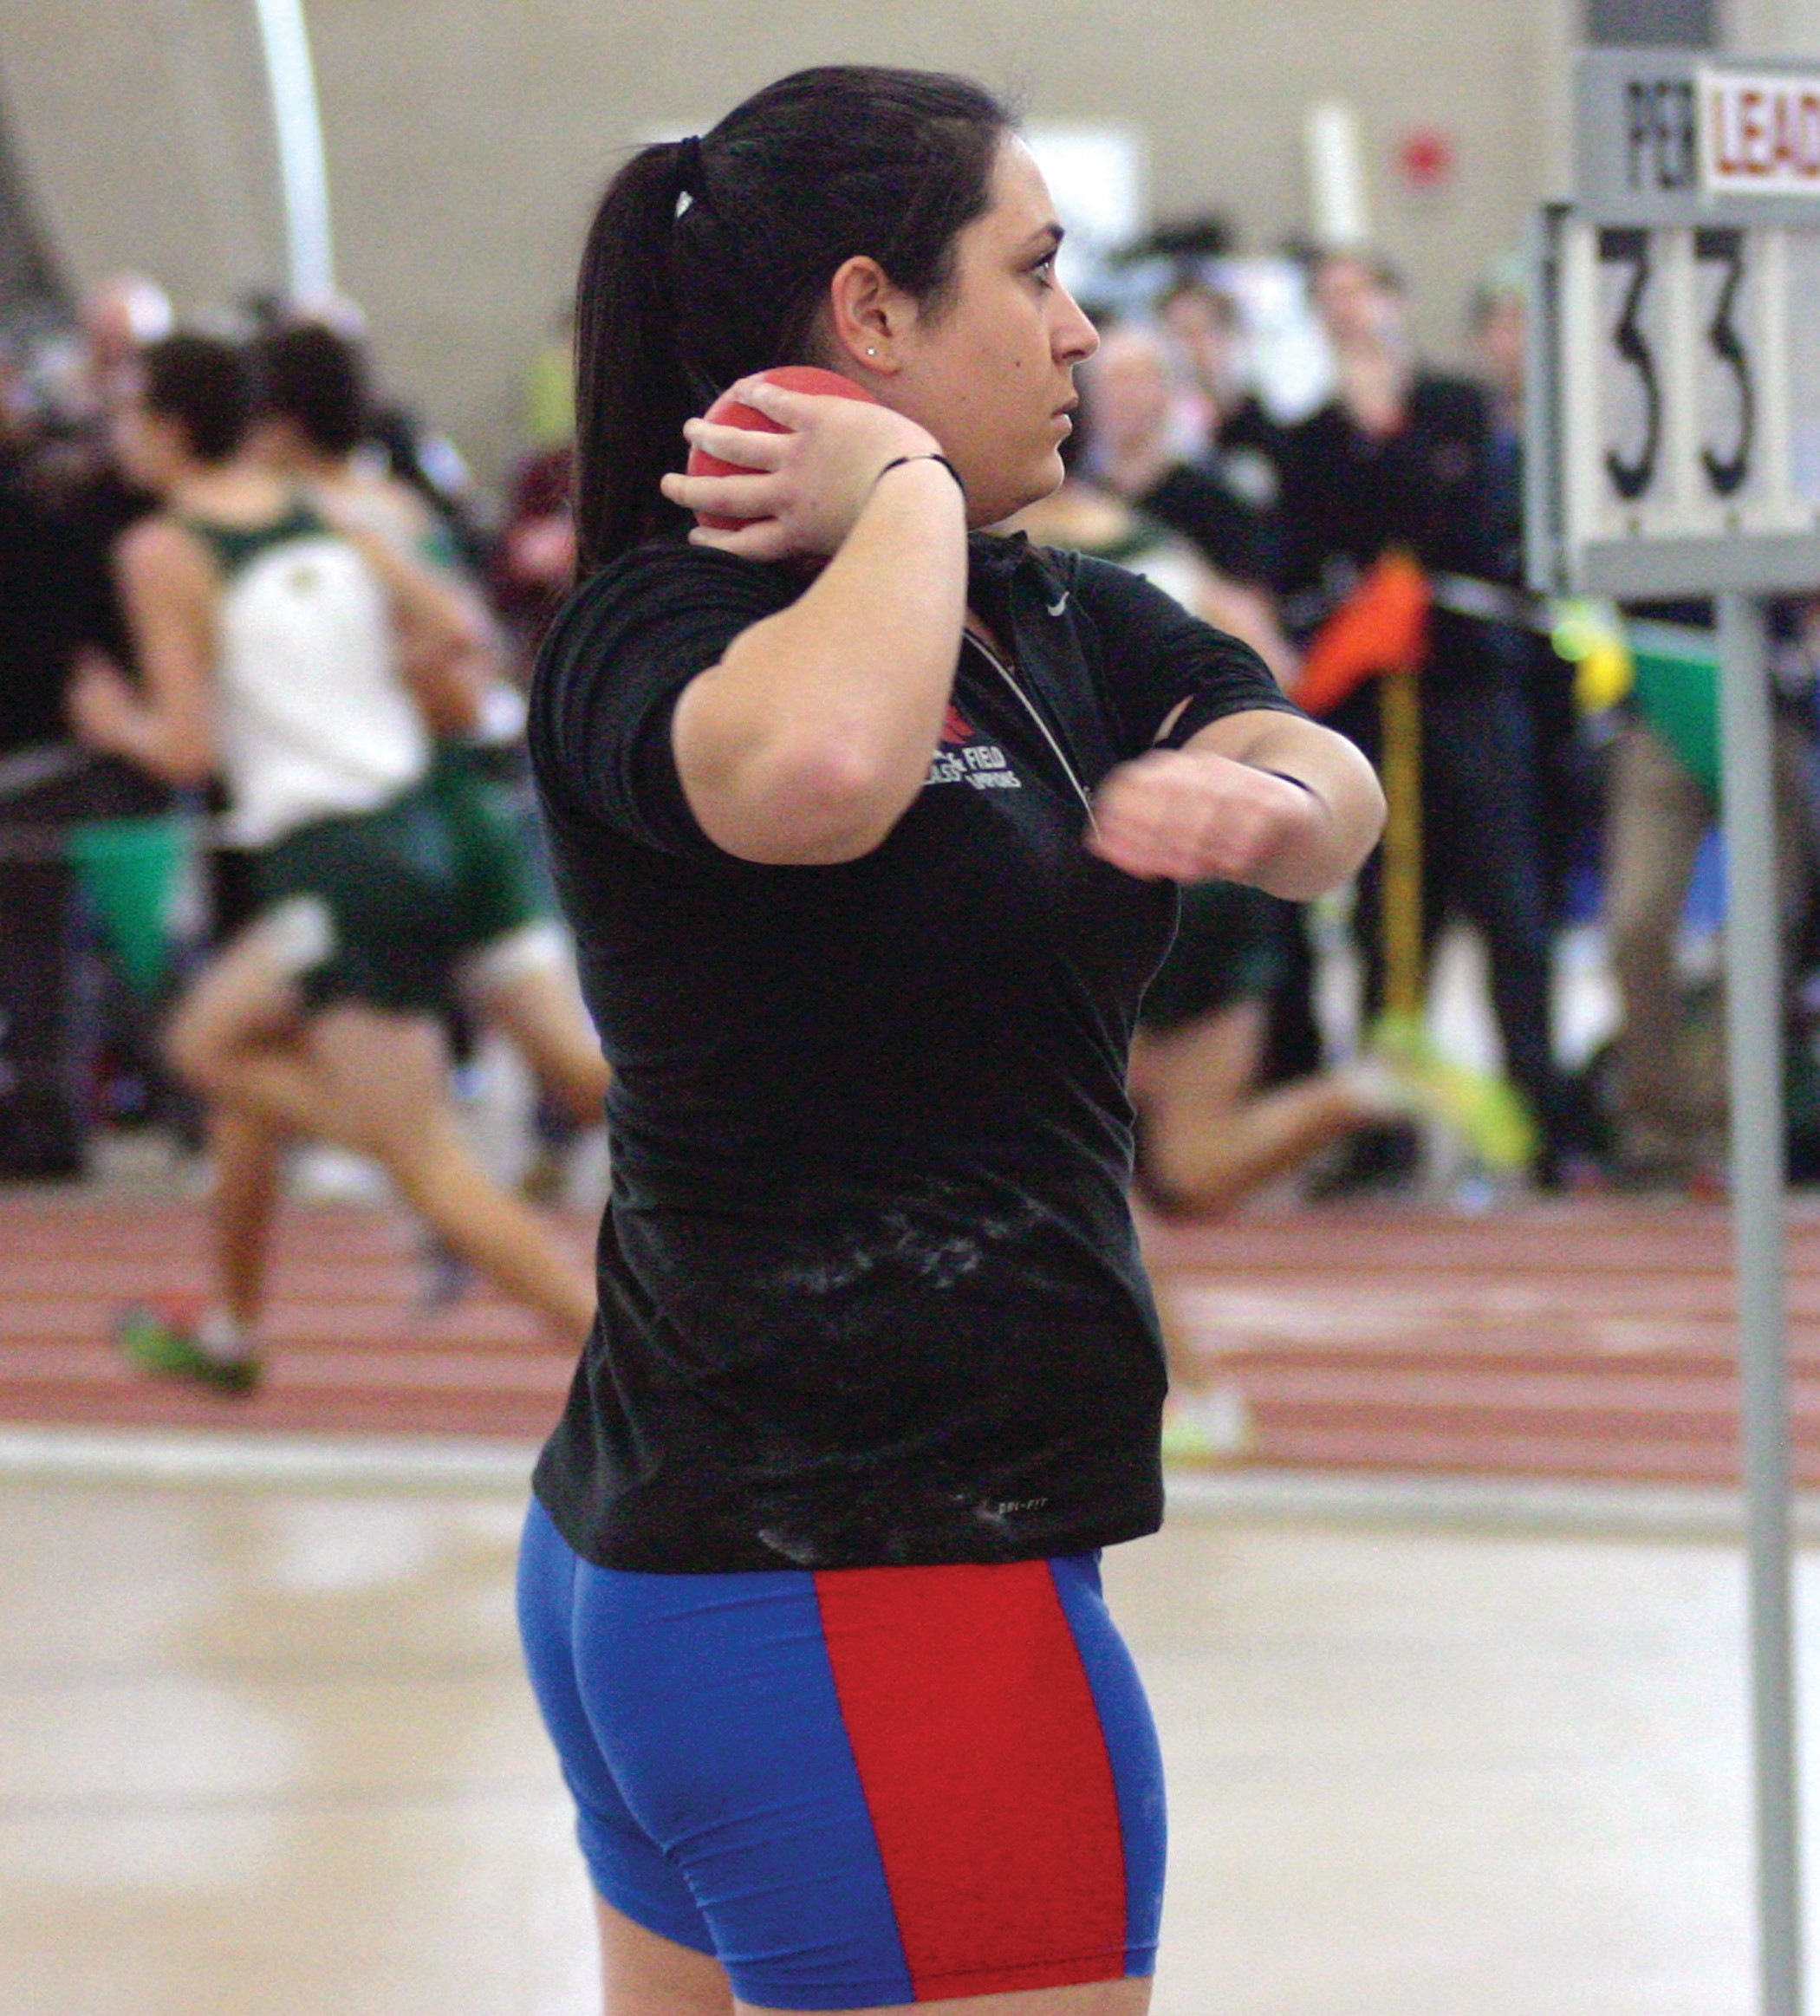 EARNING A MEDAL: Toll Gate's Ani Armenakyan took home third place in the shot put at the Dartmouth Relays.